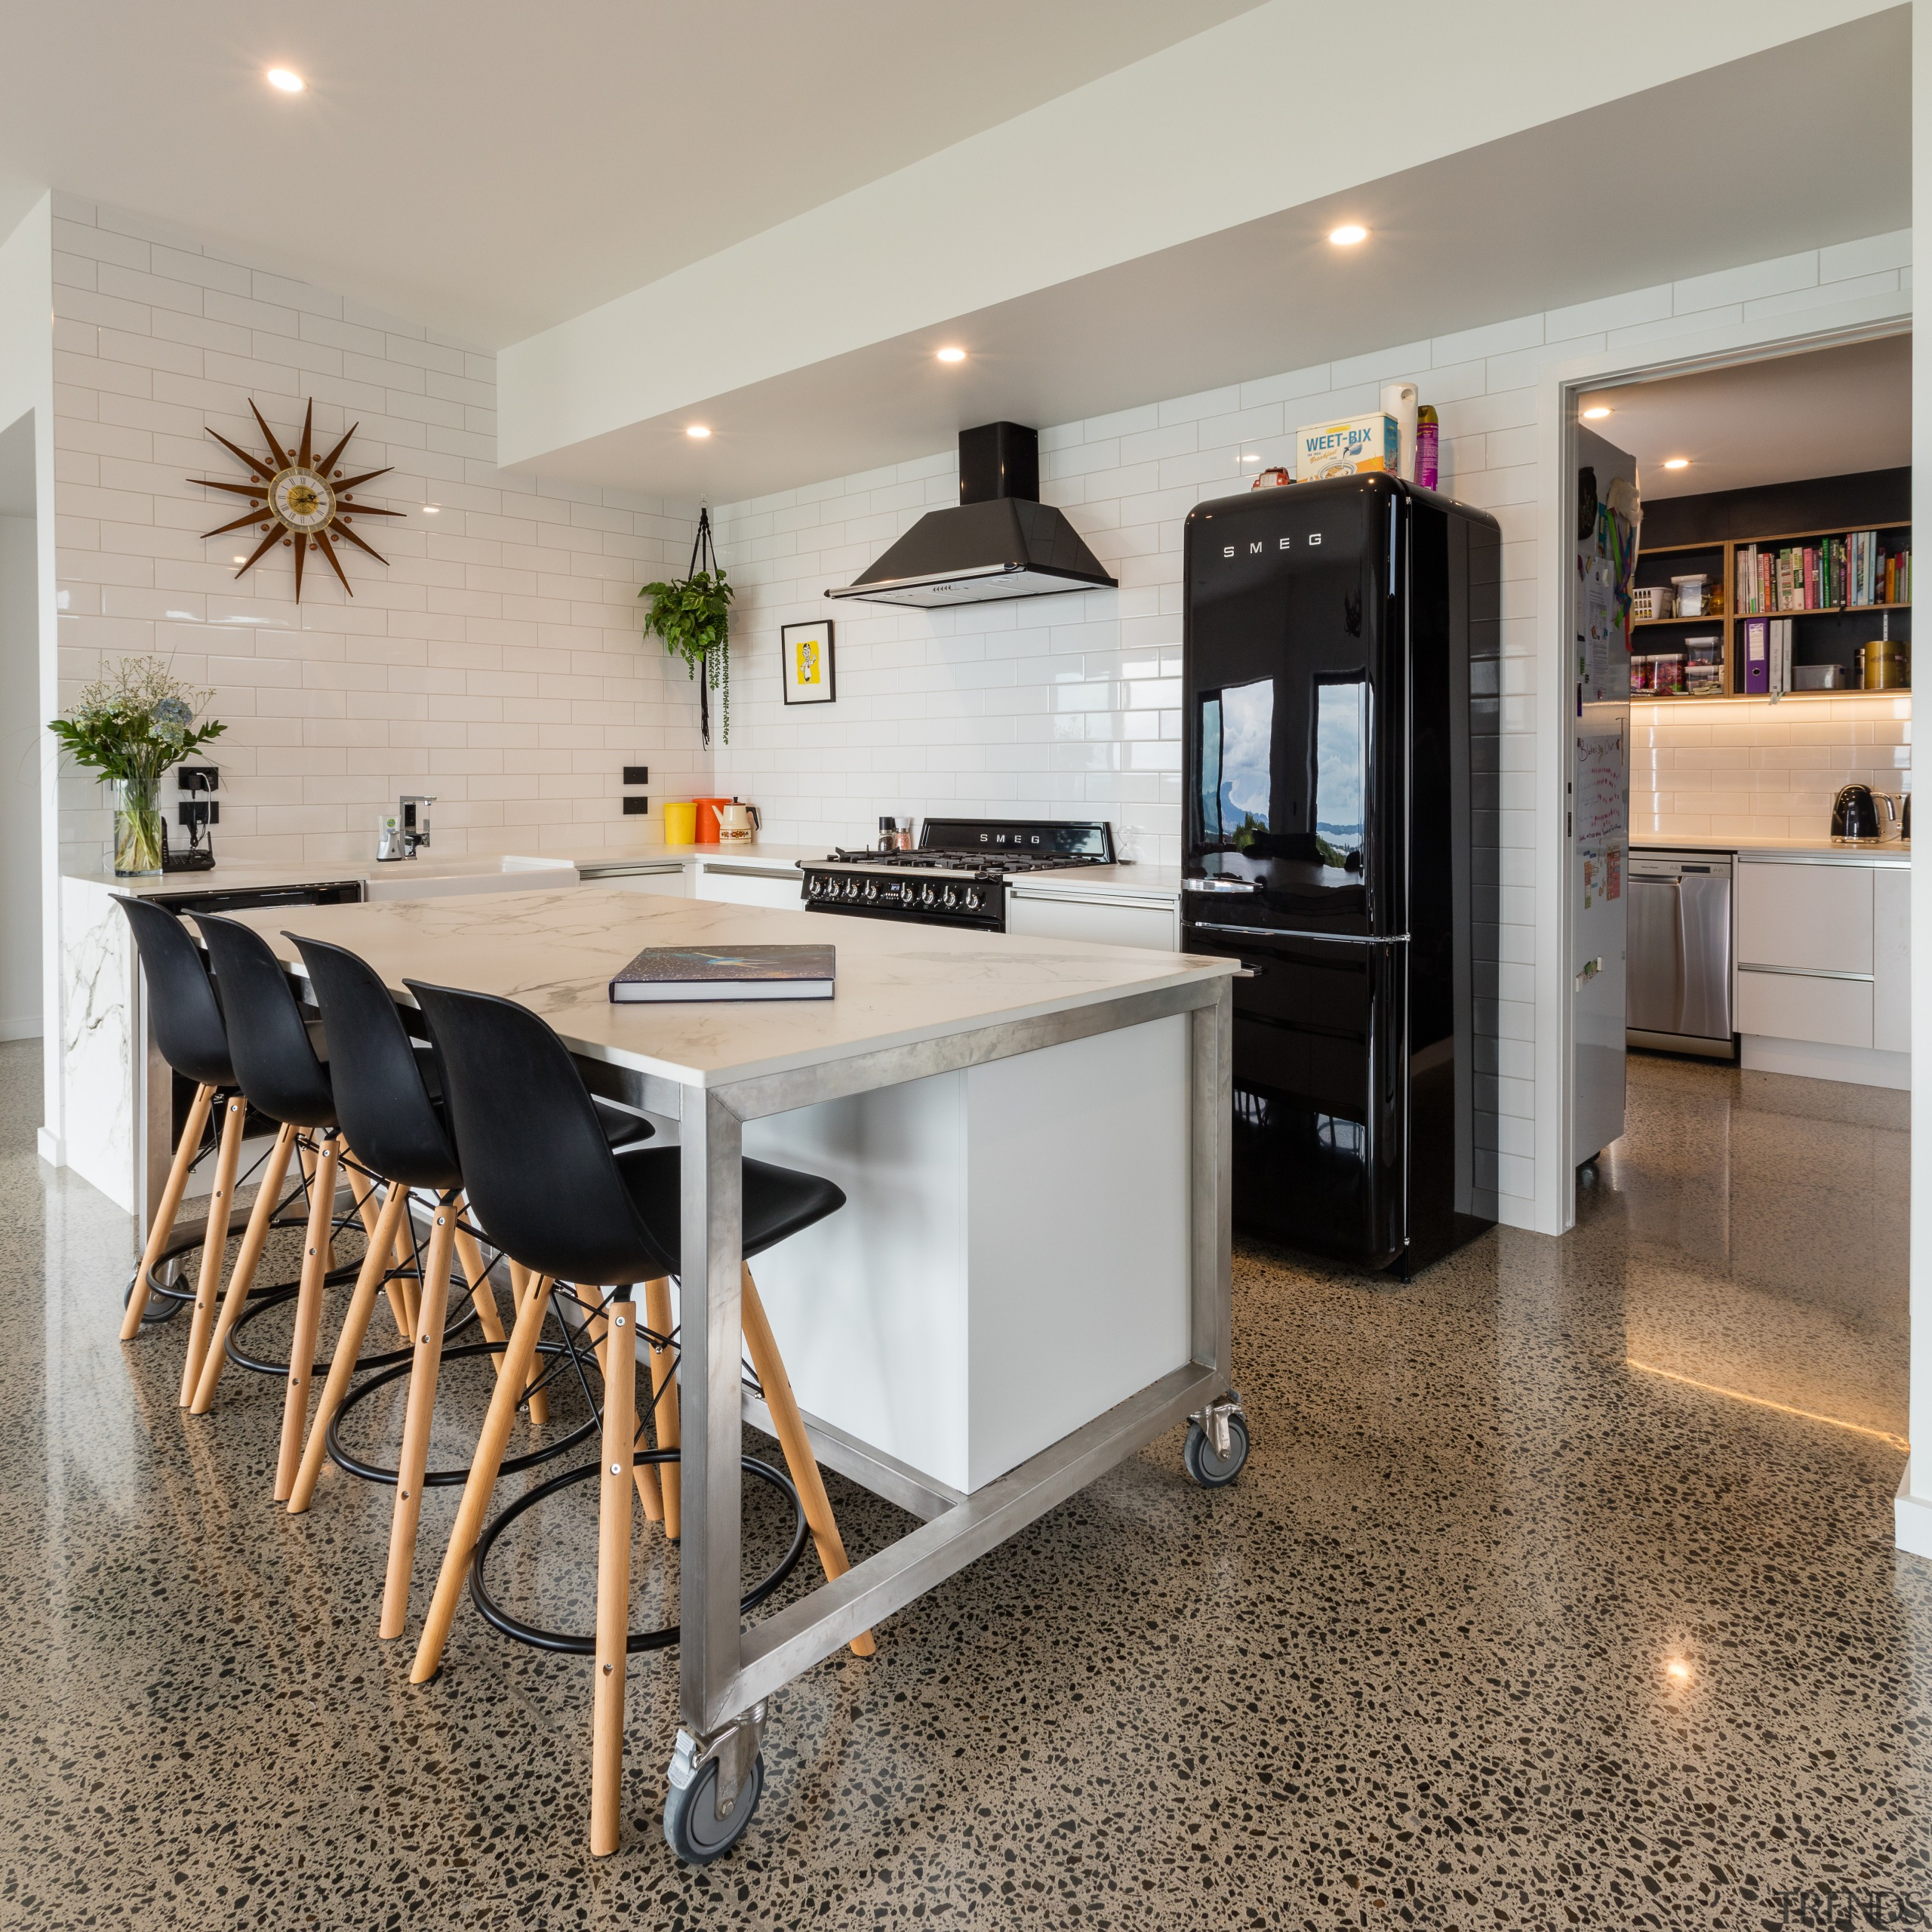 Meals on wheels  with the castors unlocked, countertop, floor, flooring, furniture, interior design, kitchen, table, gray